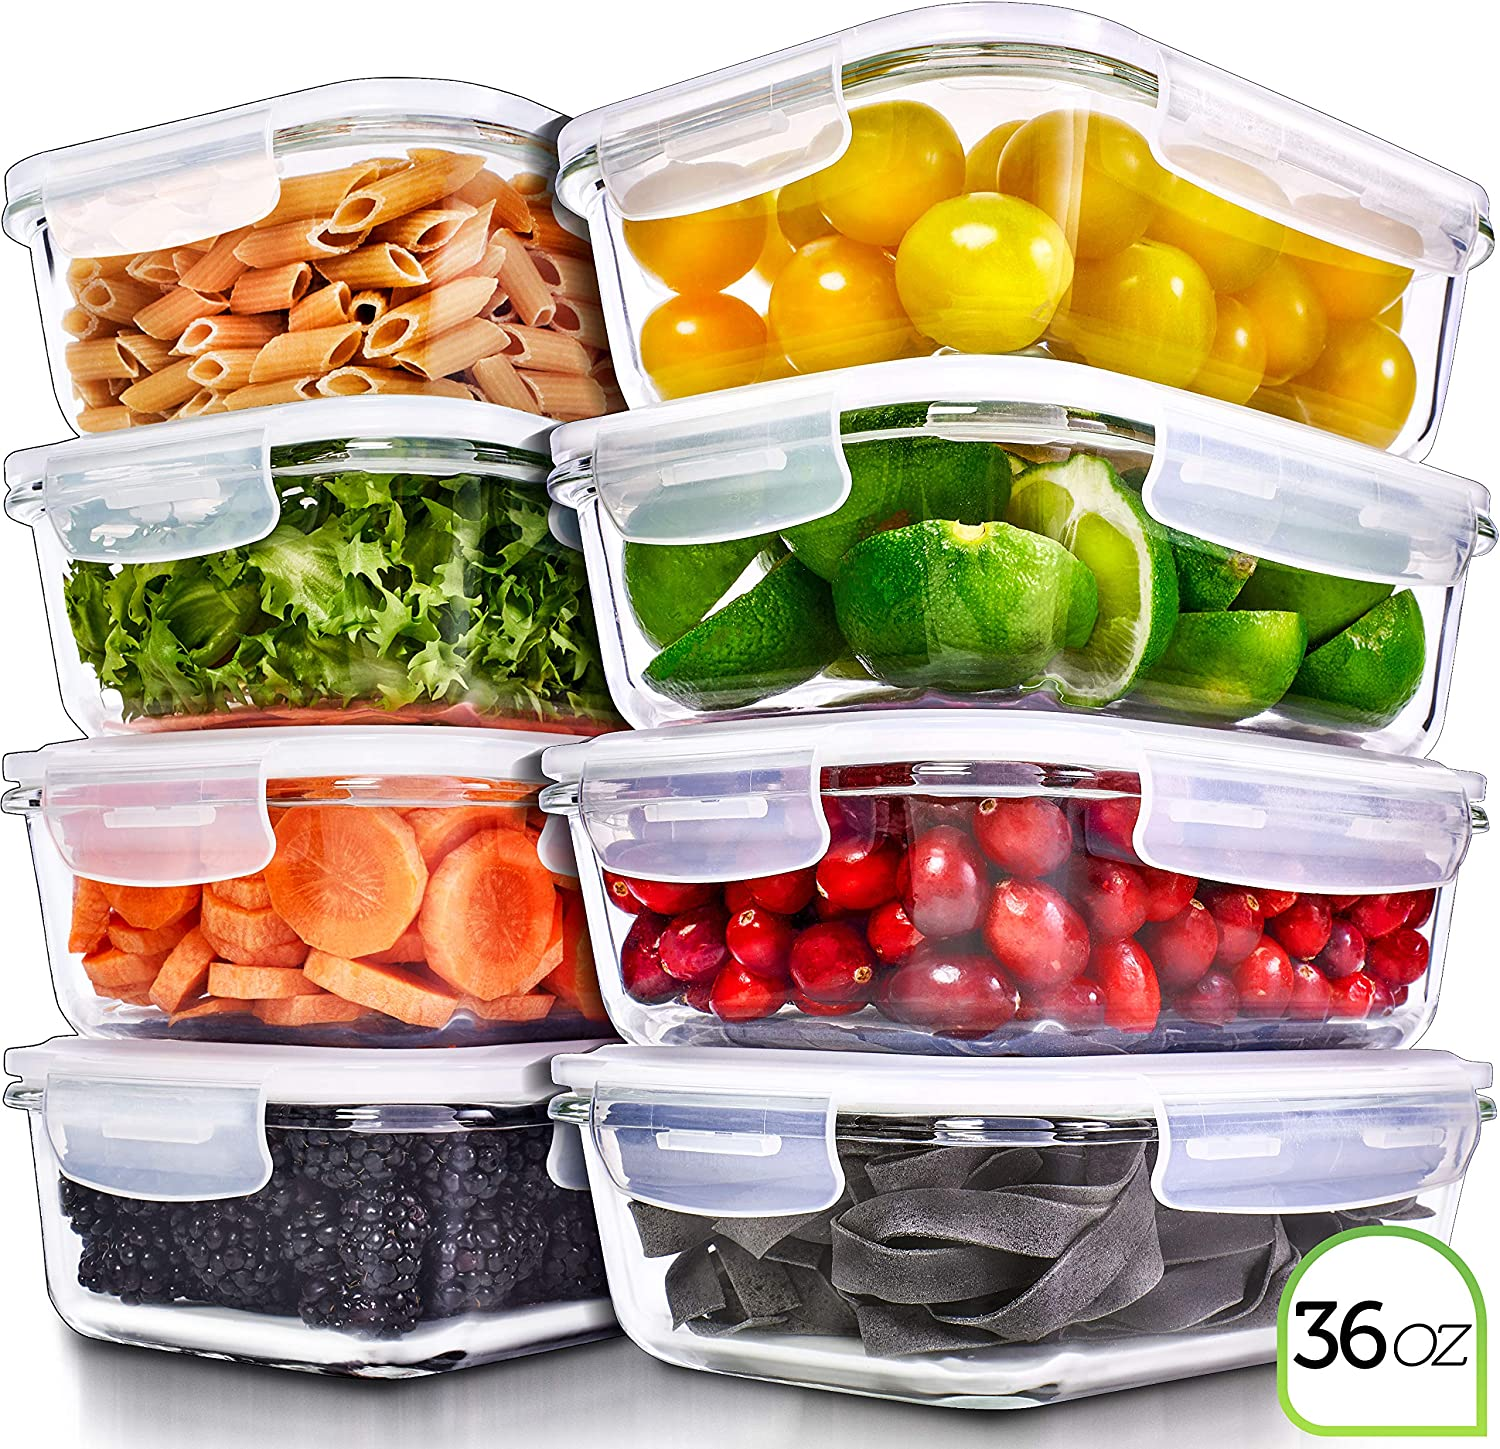 Prep Naturals Glass Meal Prep Containers - Food Prep Containers with Lids Meal Prep - Food Storage Containers Airtight - Lunch Containers Portion Control Containers Bpa-Free (8 Pack,36 Ounce)